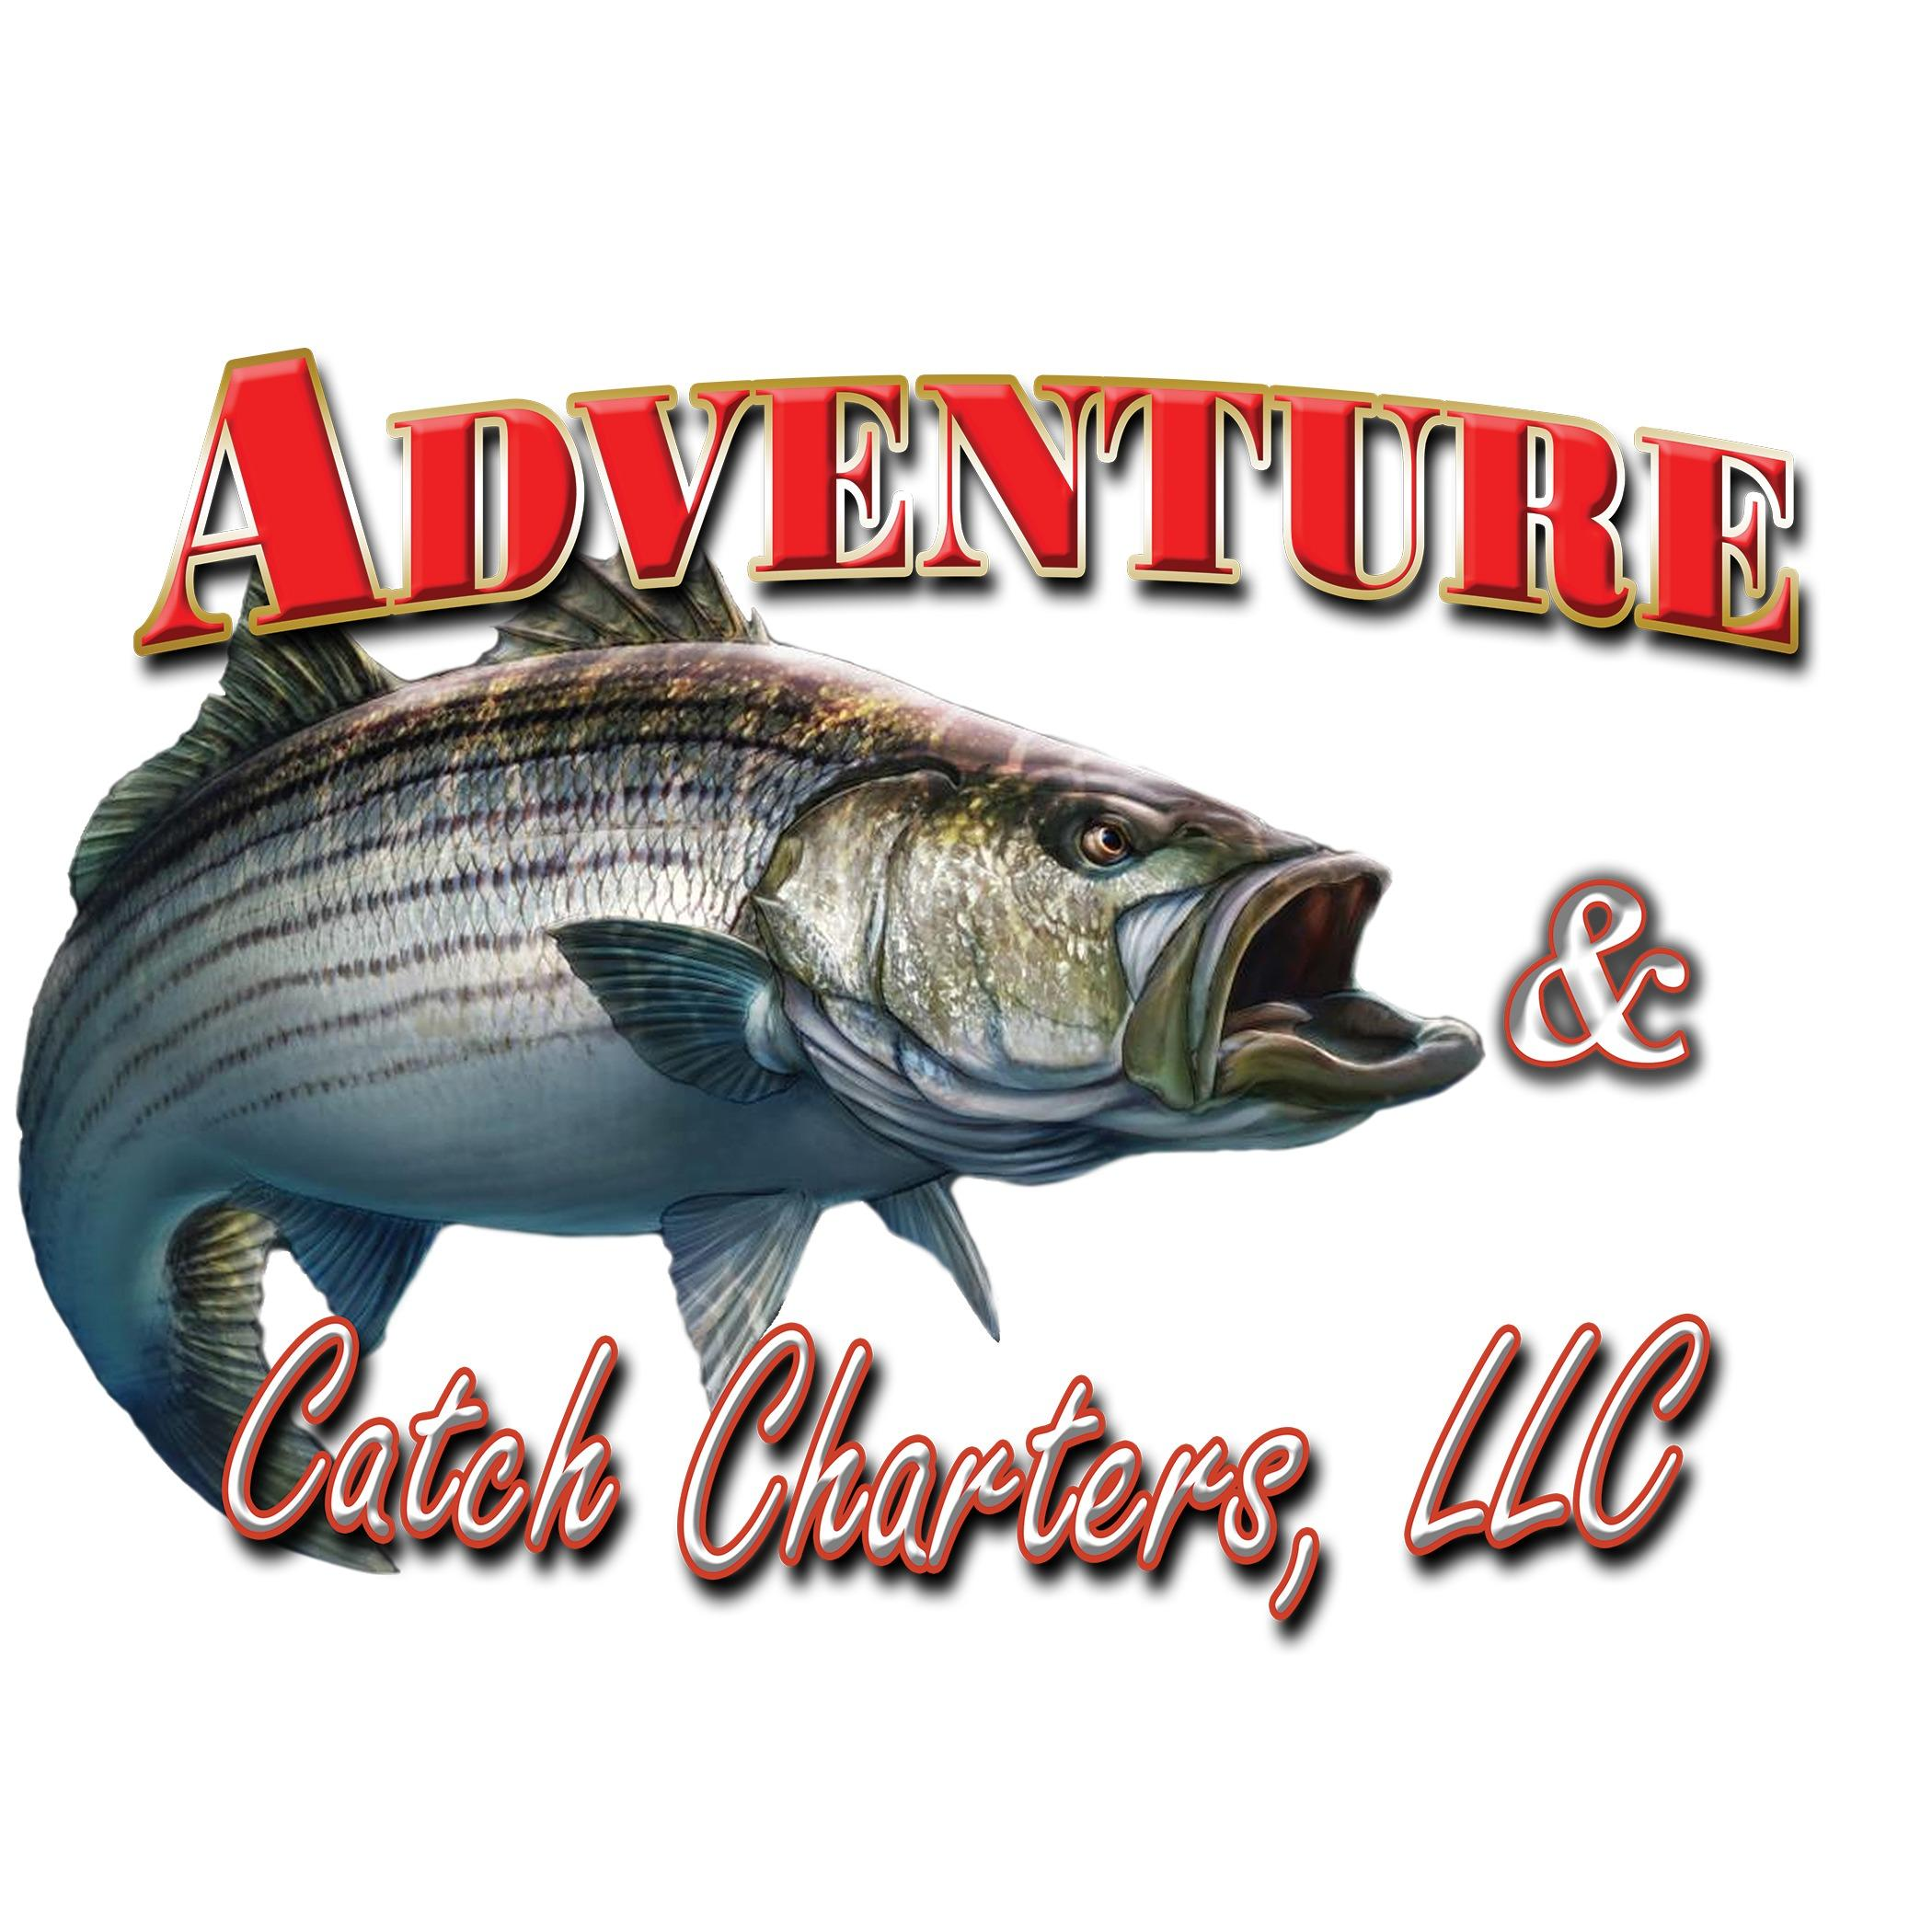 Adventure and Catch Charters LLC